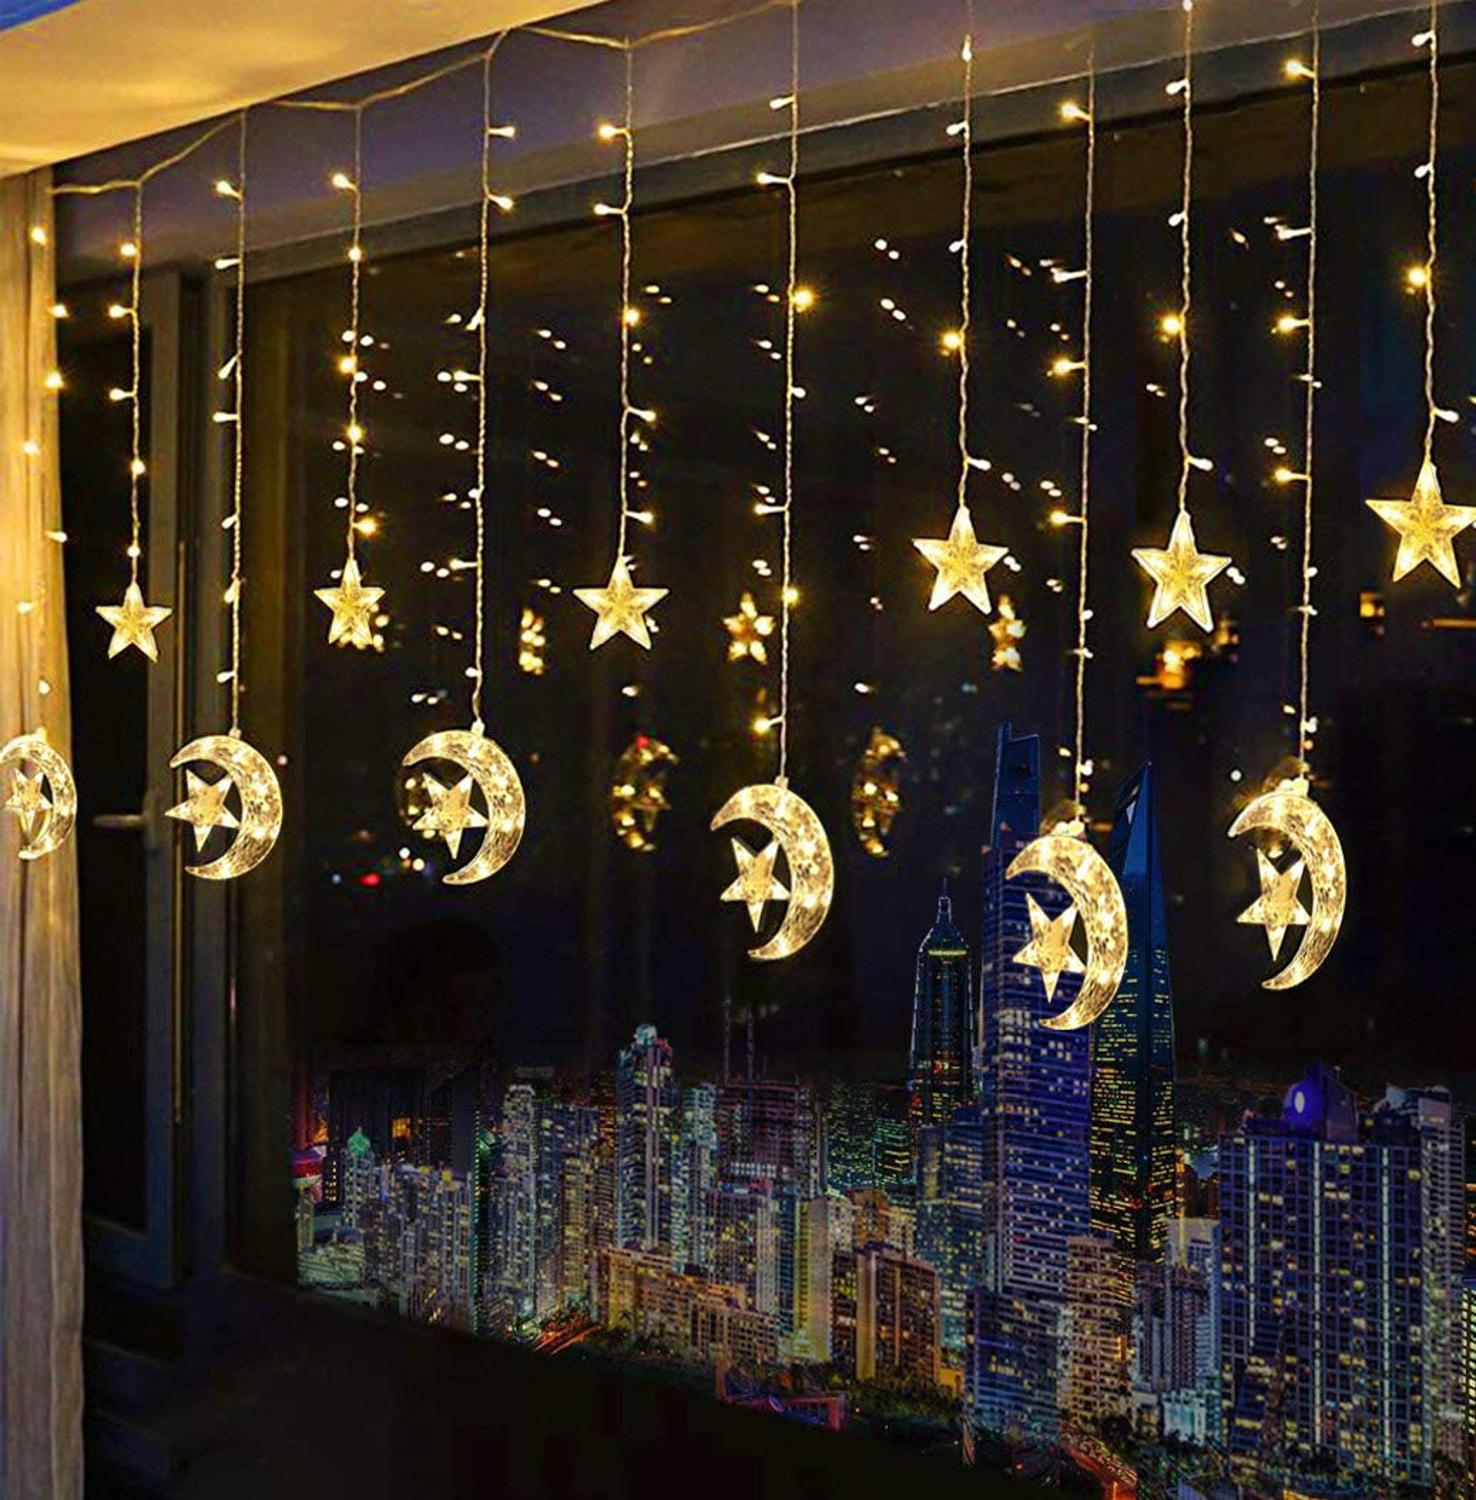 Battery Operated 2.5M 138leds Moon Star Curtain String Lights Ramadan Decorations Garland Lamp For Christmas Party Wedding